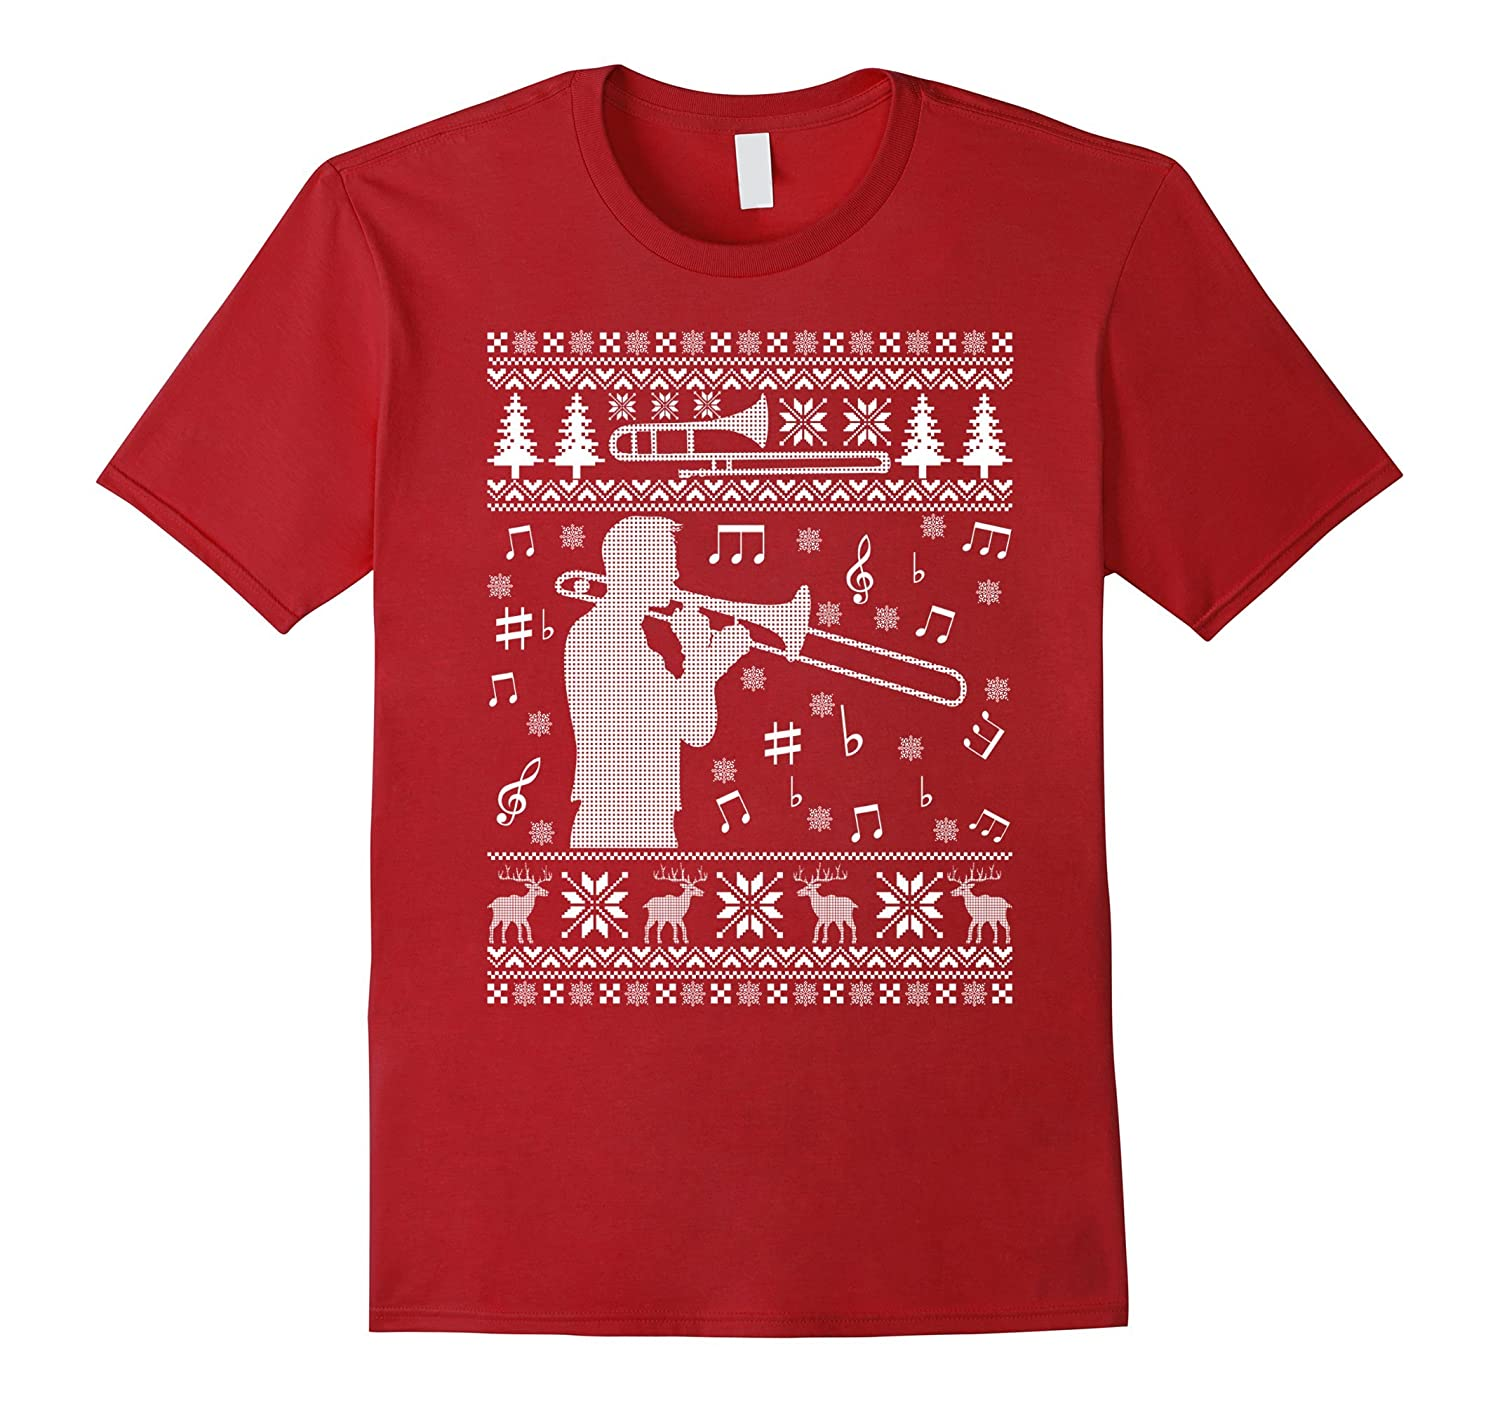 Band Ugly Christmas Sweaters.Trombone Ugly Christmas Sweater Band T Shirt Anz